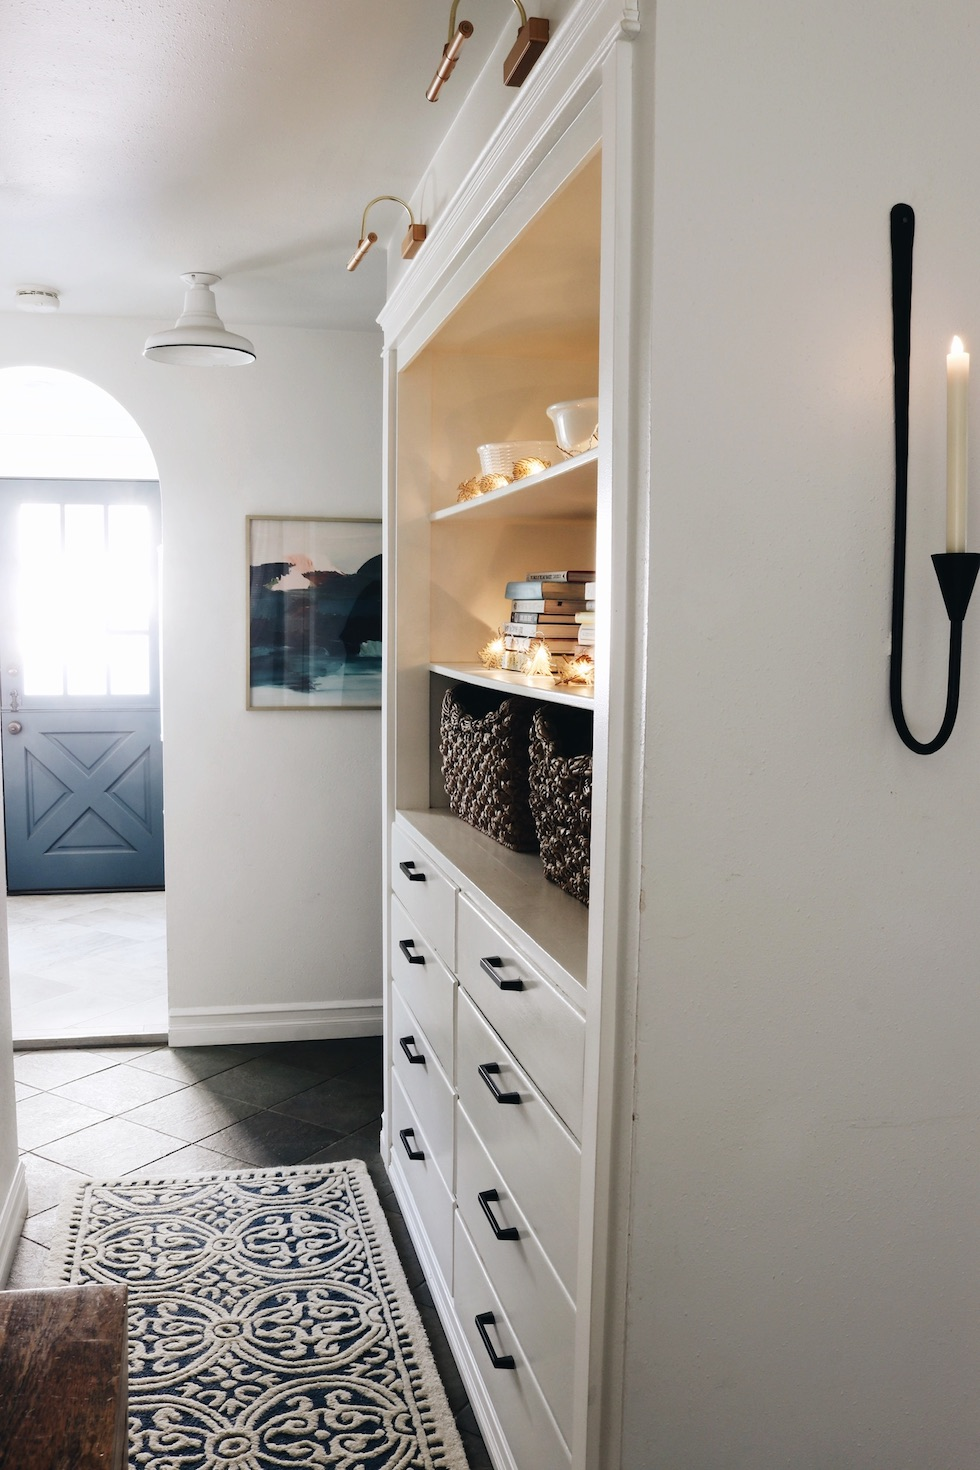 Hall Cabinet - Battery Library Lights and Removable Wallpaper